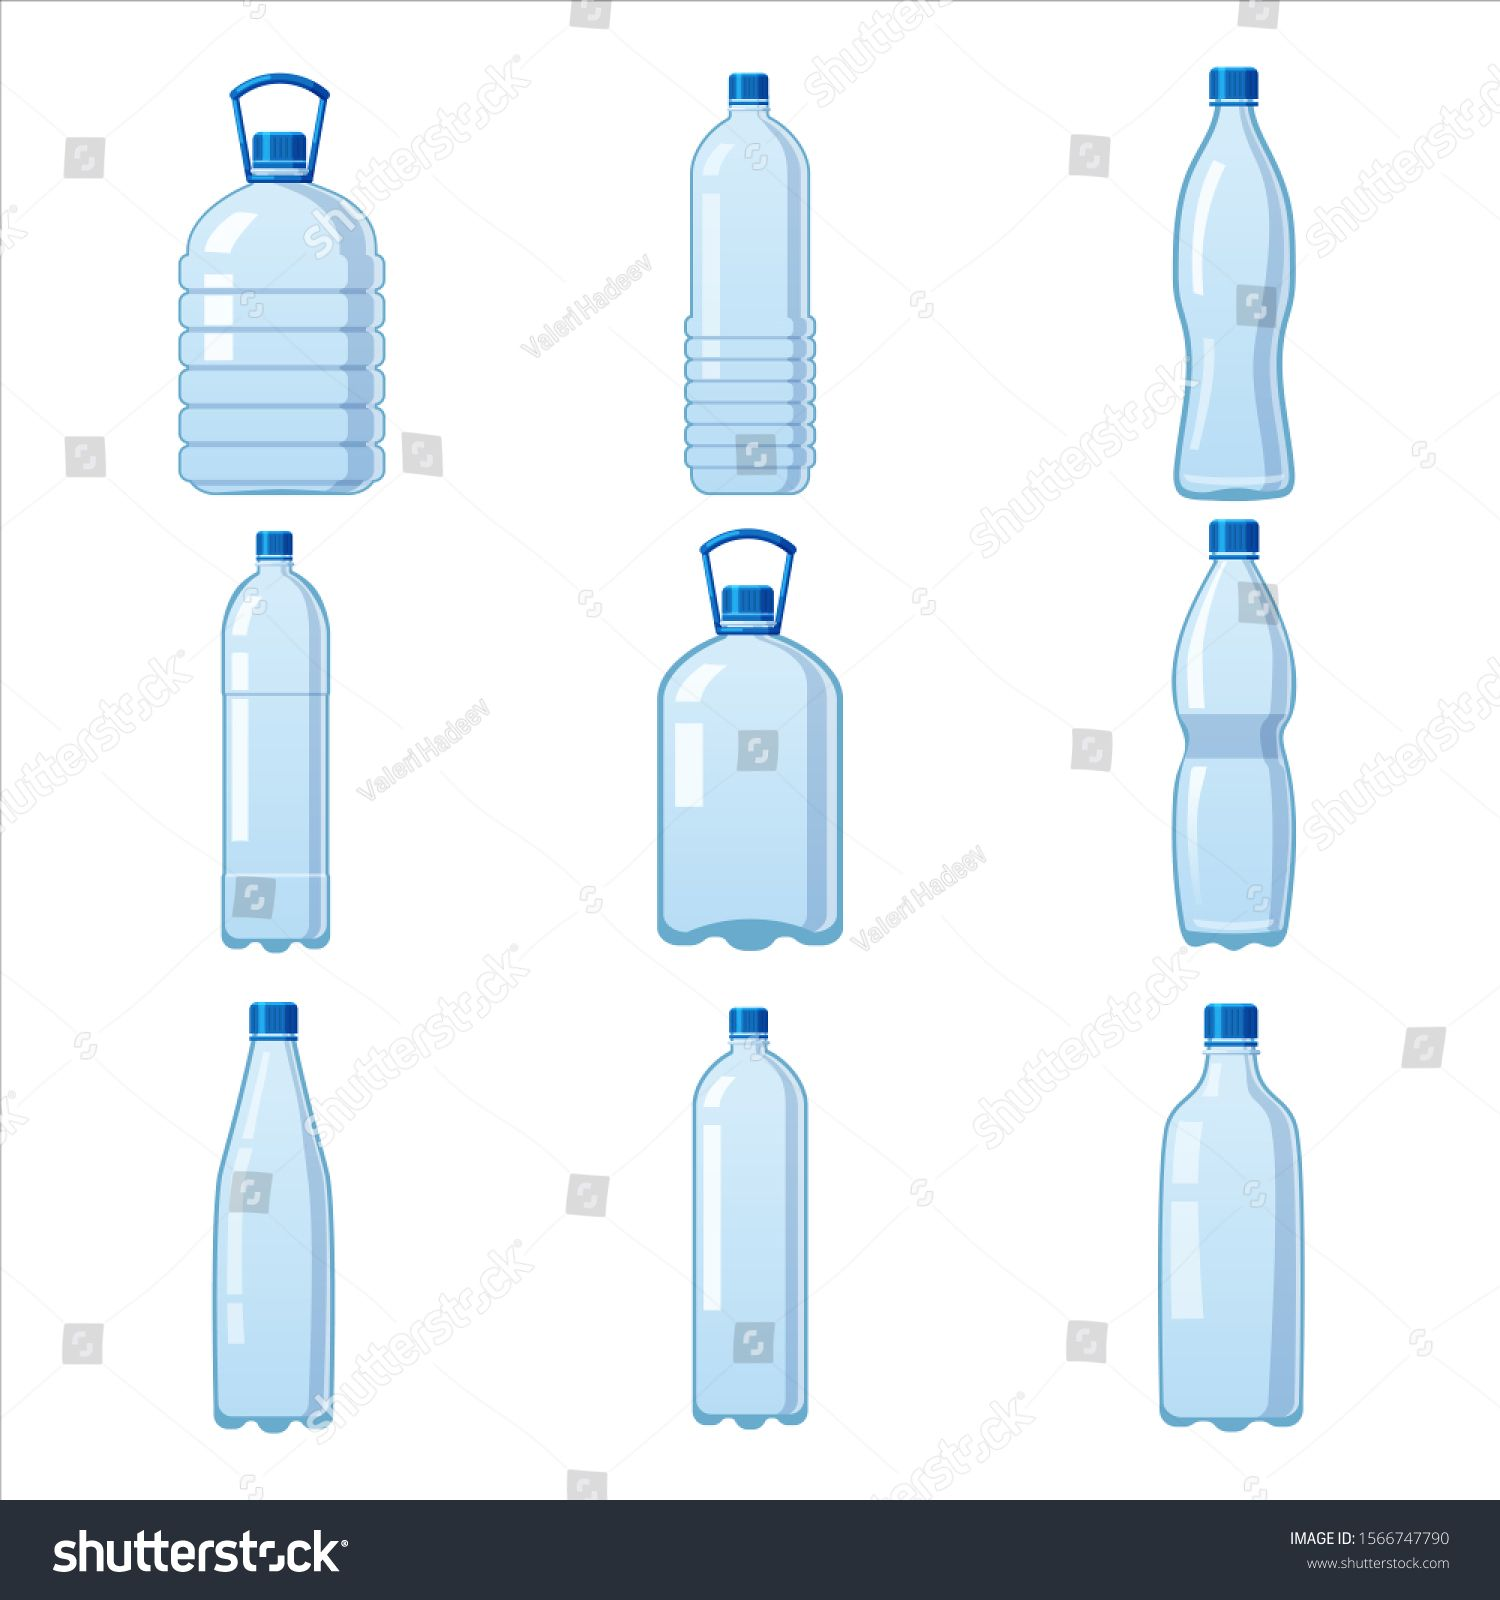 Set Plastic Water Bottles Icon Empty Liquid Container Drink With Screw Cap For Beverage Drinking Mineral Water Water Bottle Drawing Bottle Drawing Water Bottle